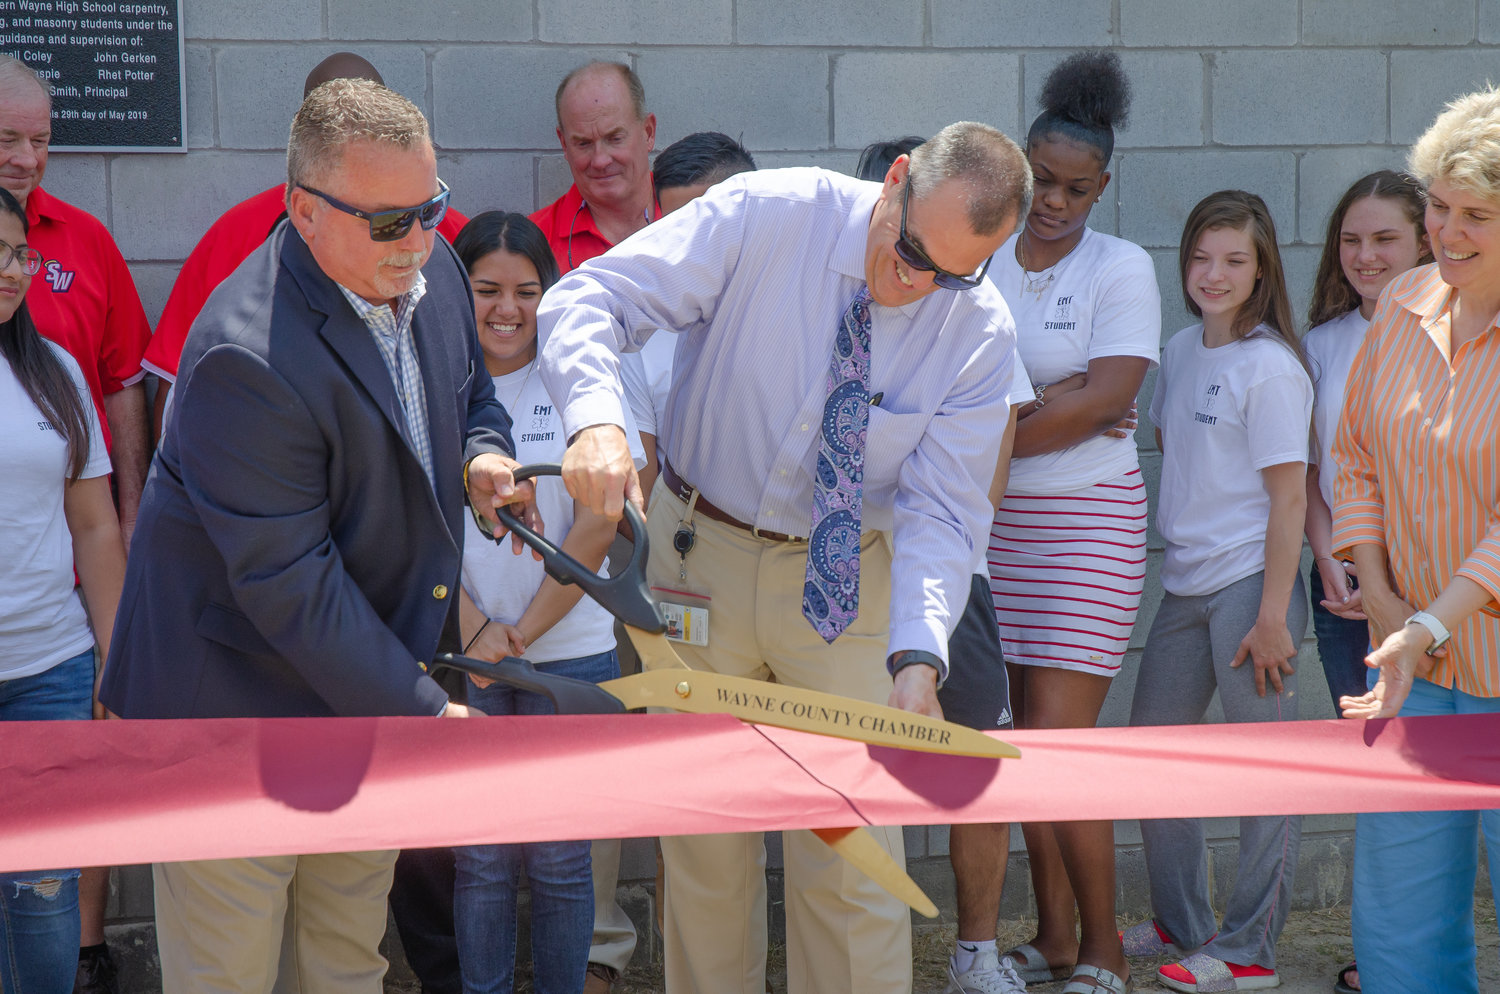 Wayne County Public Schools Board of Education Chair Chris West, along with Superintendent Dr. Michael Dunsmore, cuts the ribbon for the opening of the new EMT Training facility on Southern Wayne High's campus.